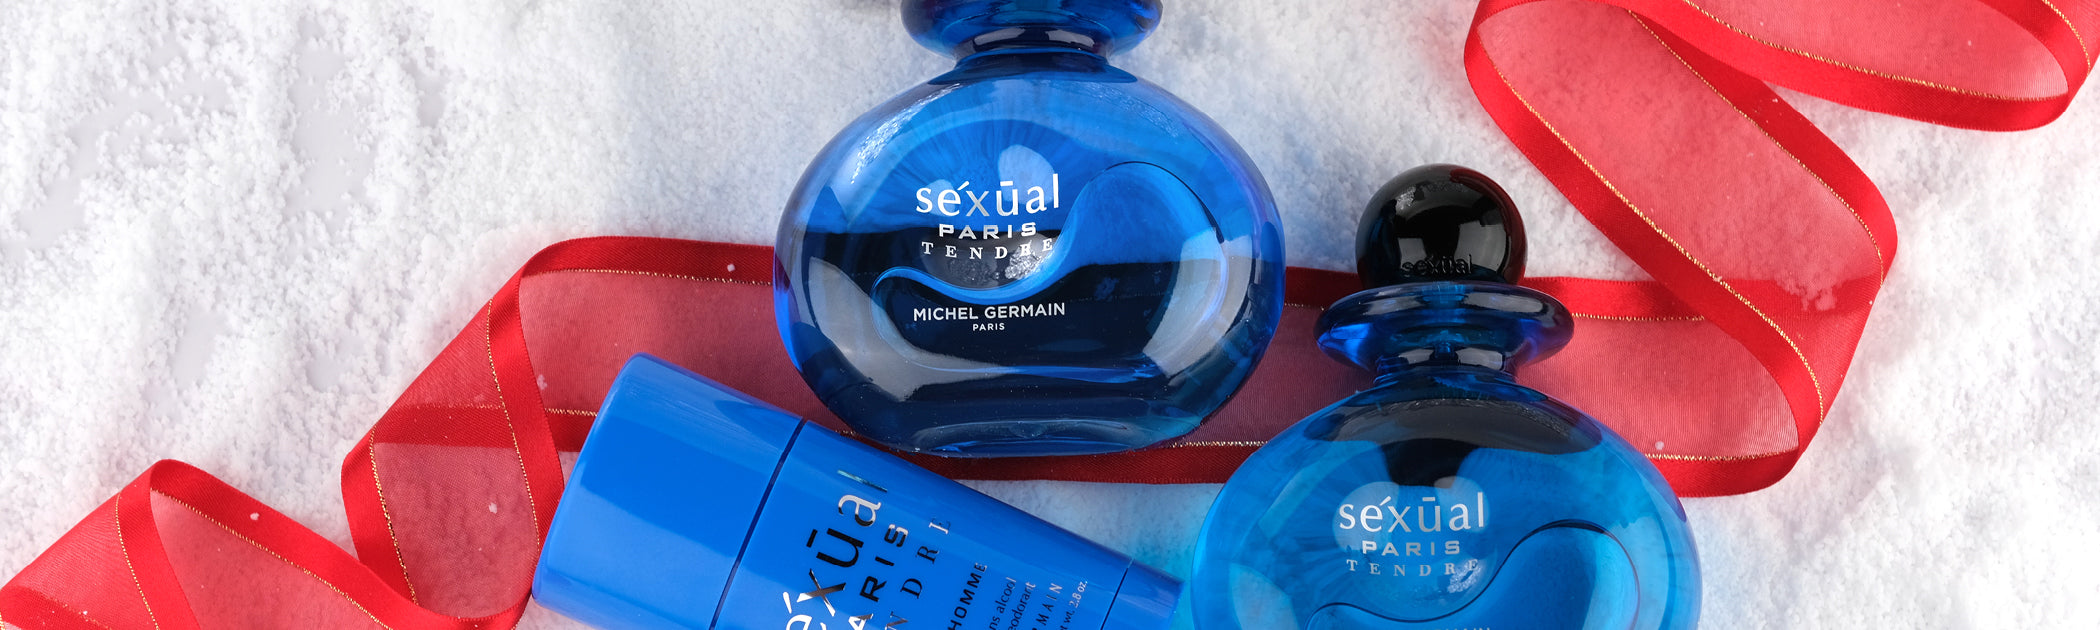 michel-germain-sexual-colognes-collection-banner